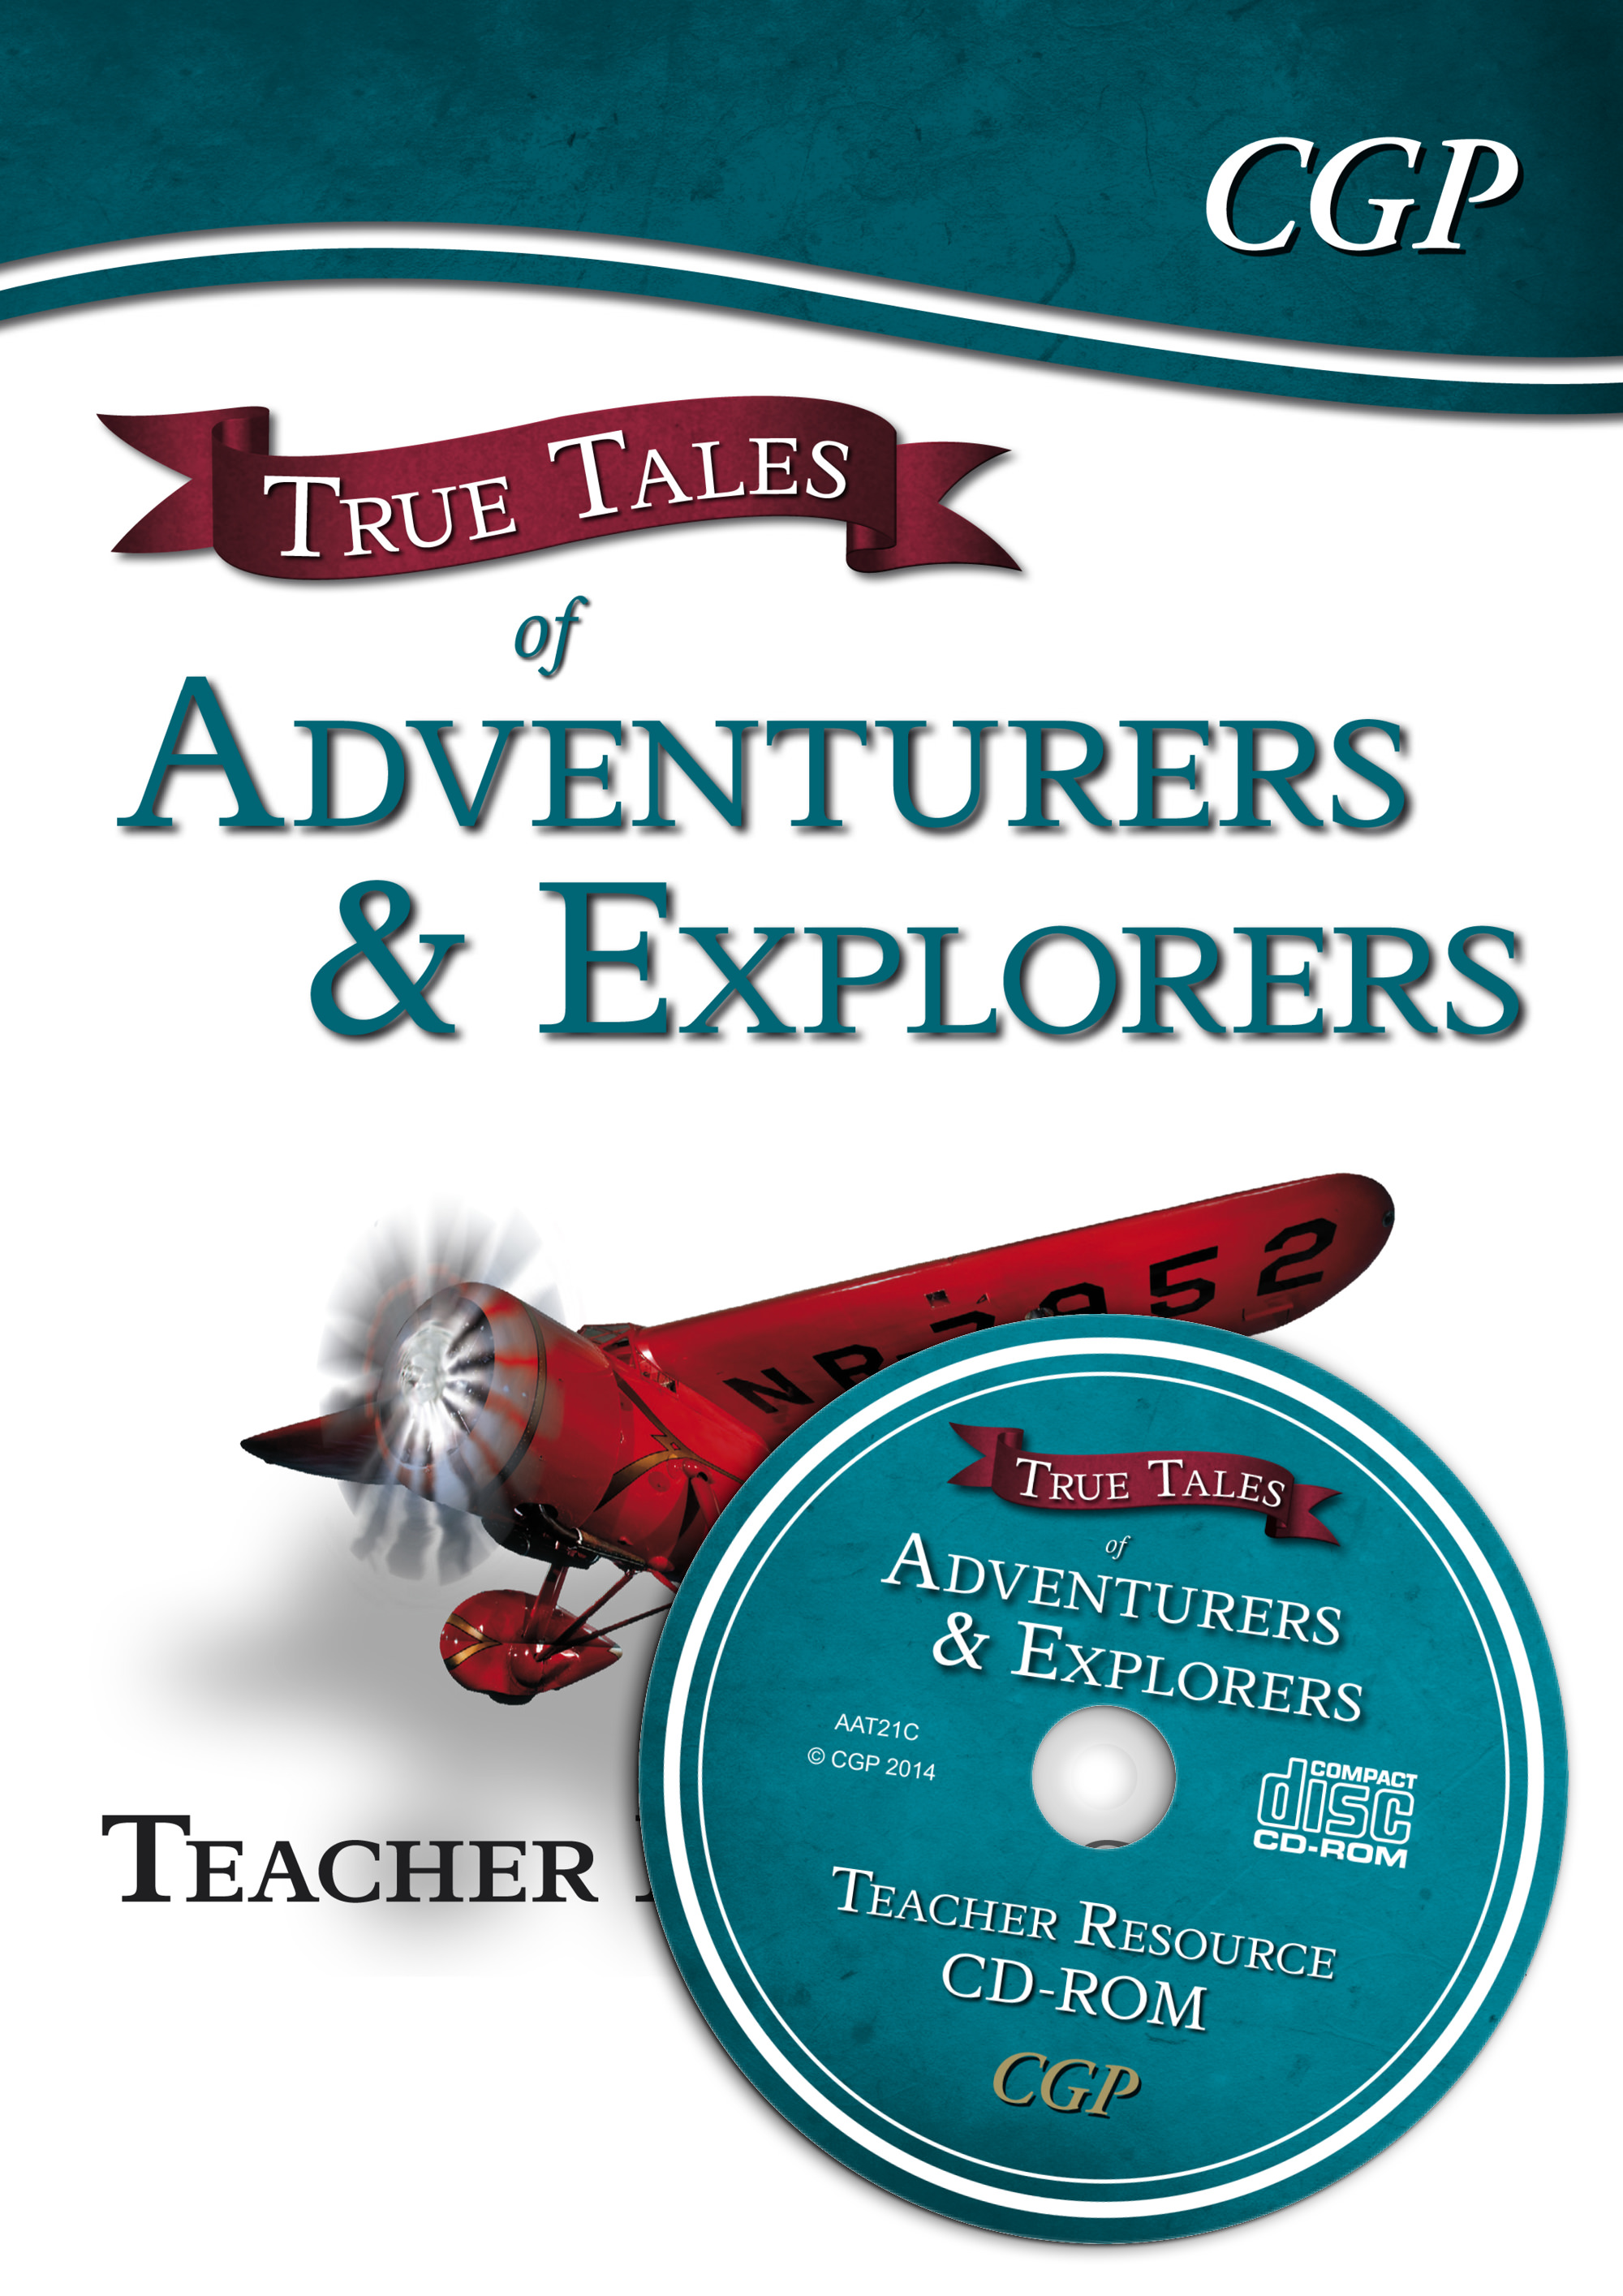 AAT21 - True Tales of Adventurers & Explorers — Guided Reading Teacher Resource Pack